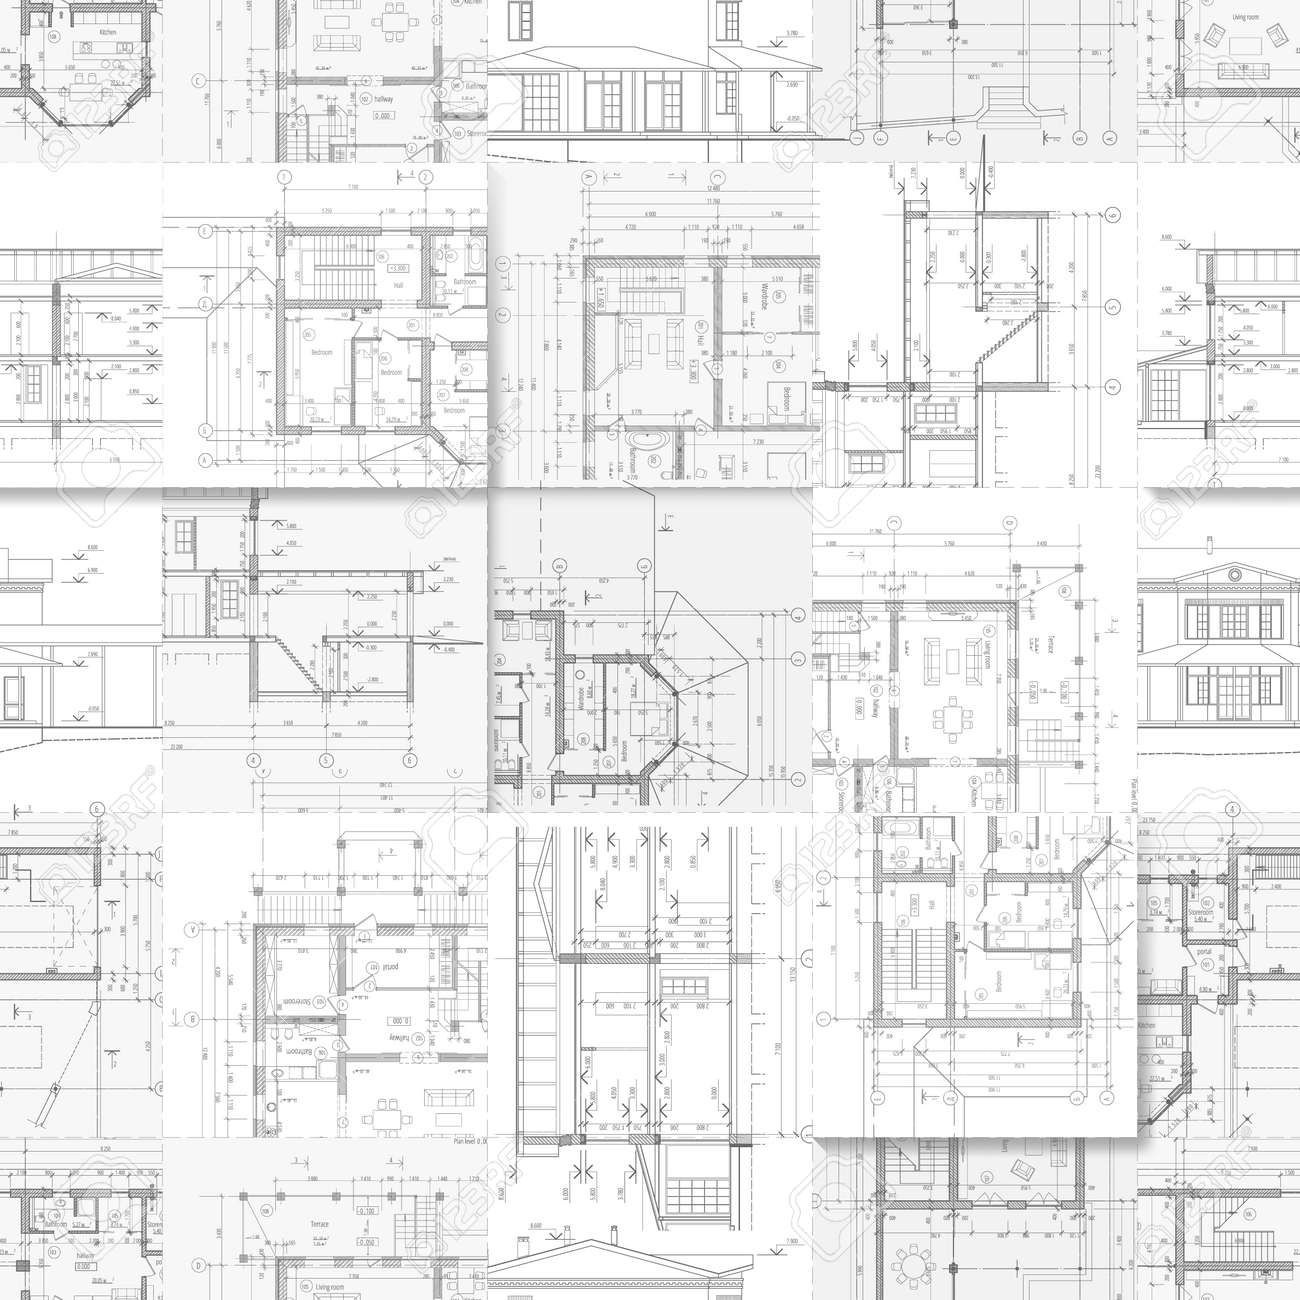 Architectural Drawings A Set Of Facades And Building Plans